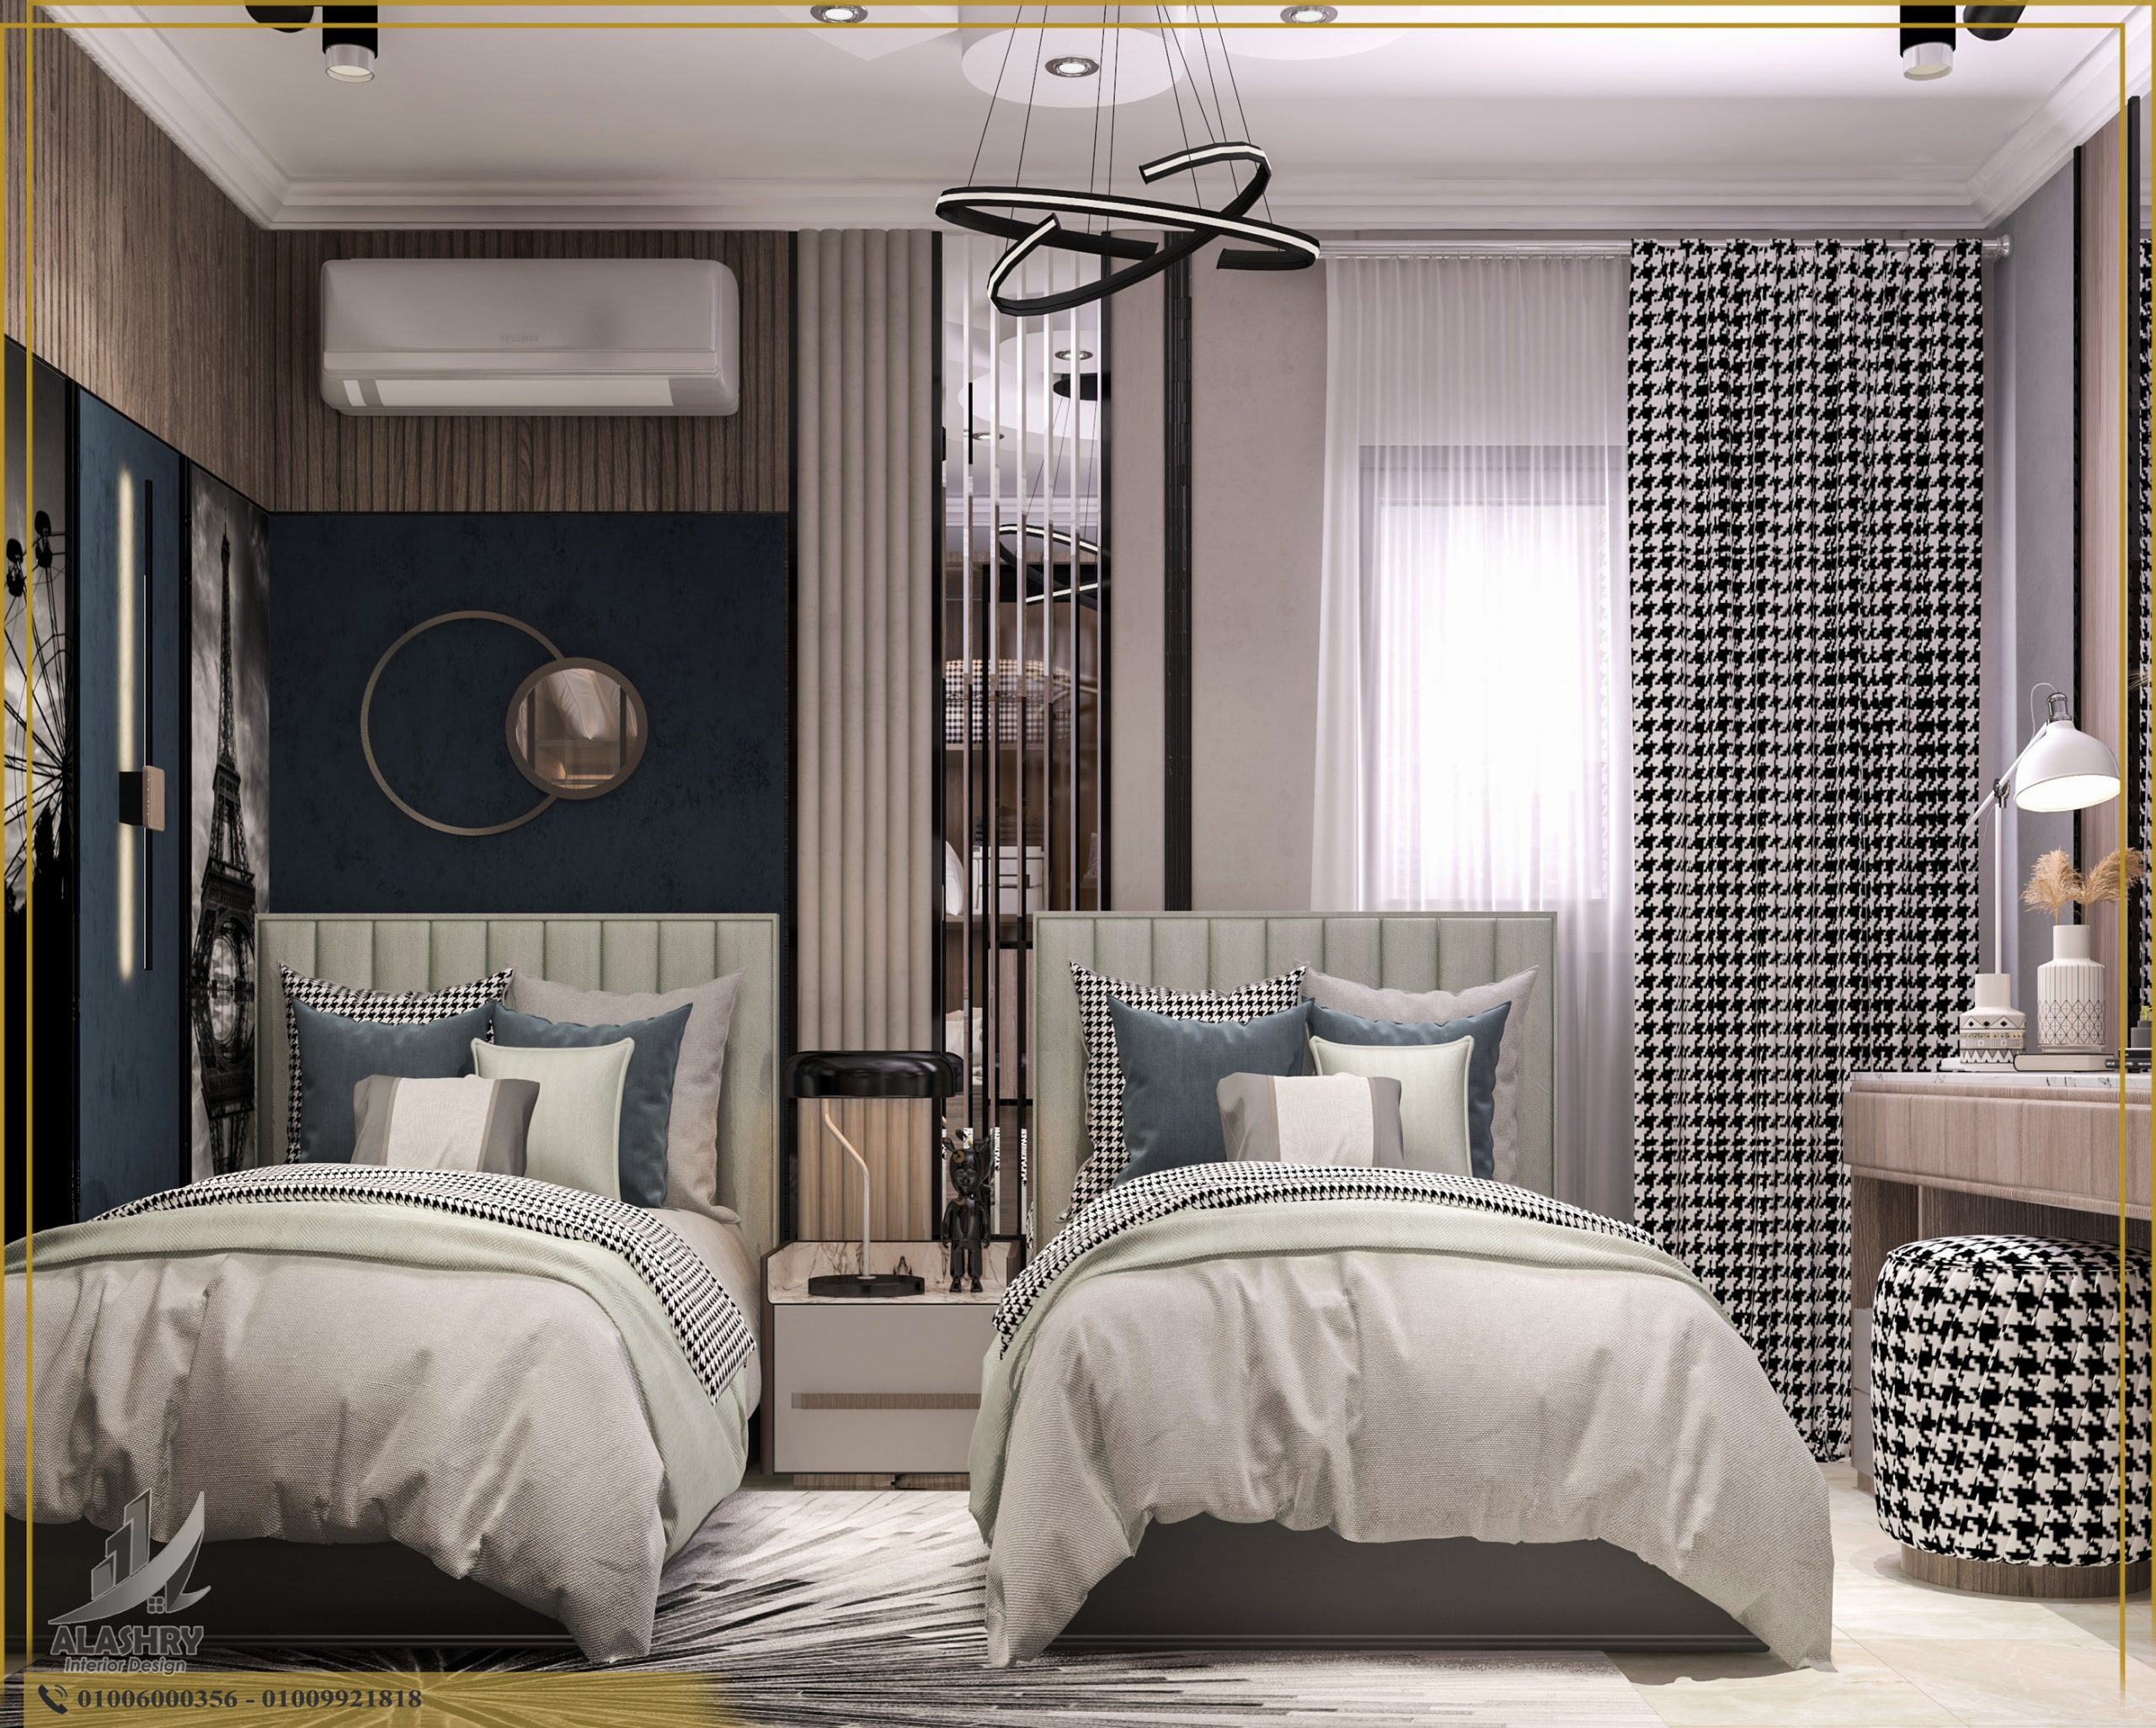 Kids shared bedroom ideas with twin beds and modern curtains